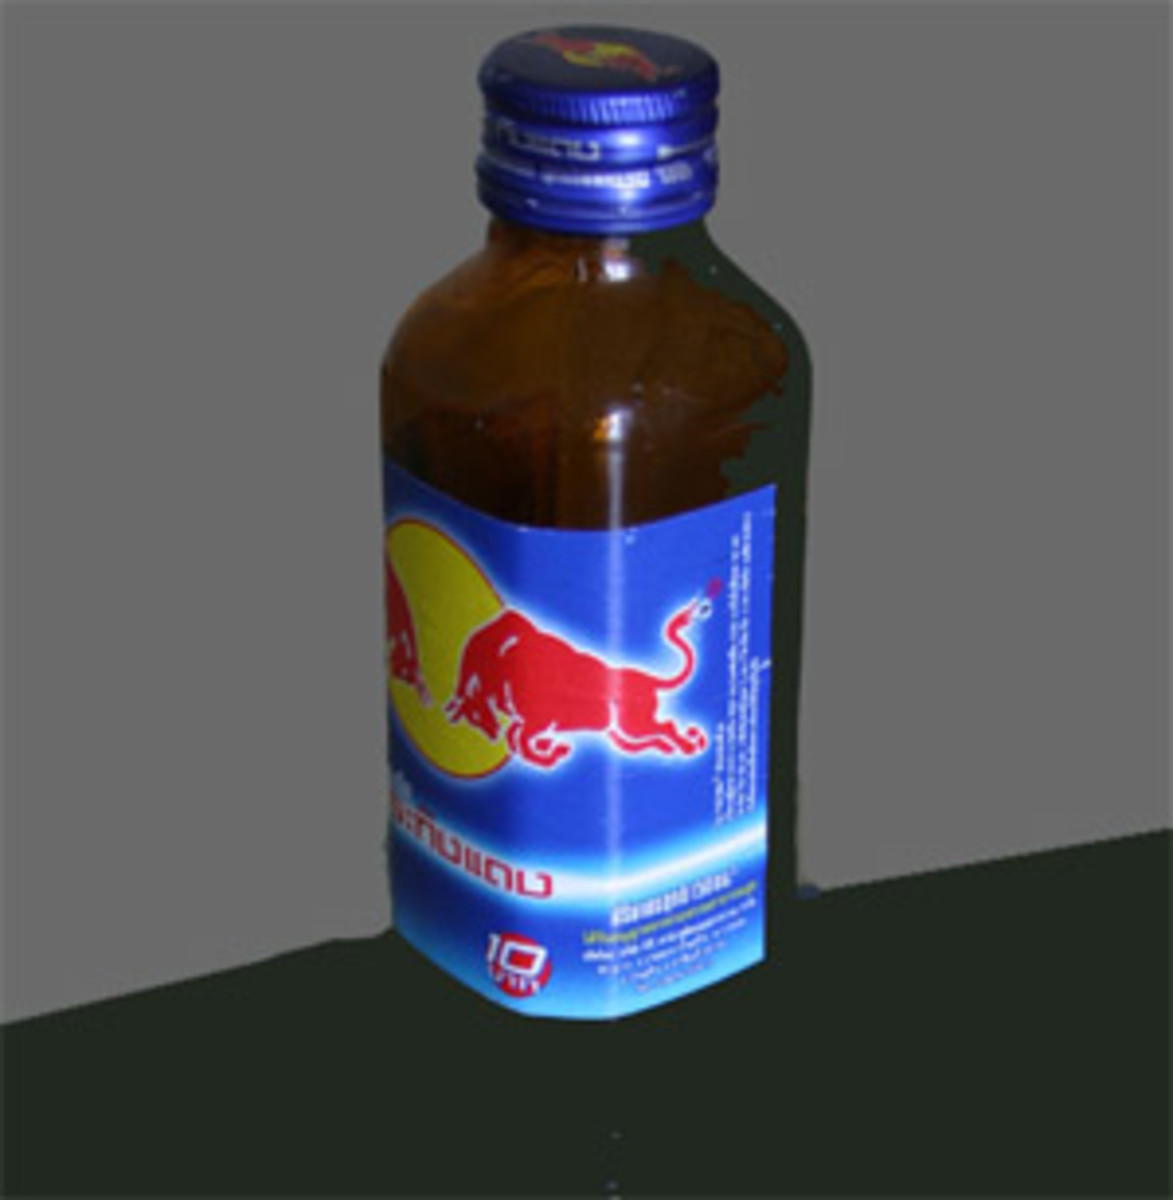 Manufacture your own Energy Drink or Shot - Make Your Own